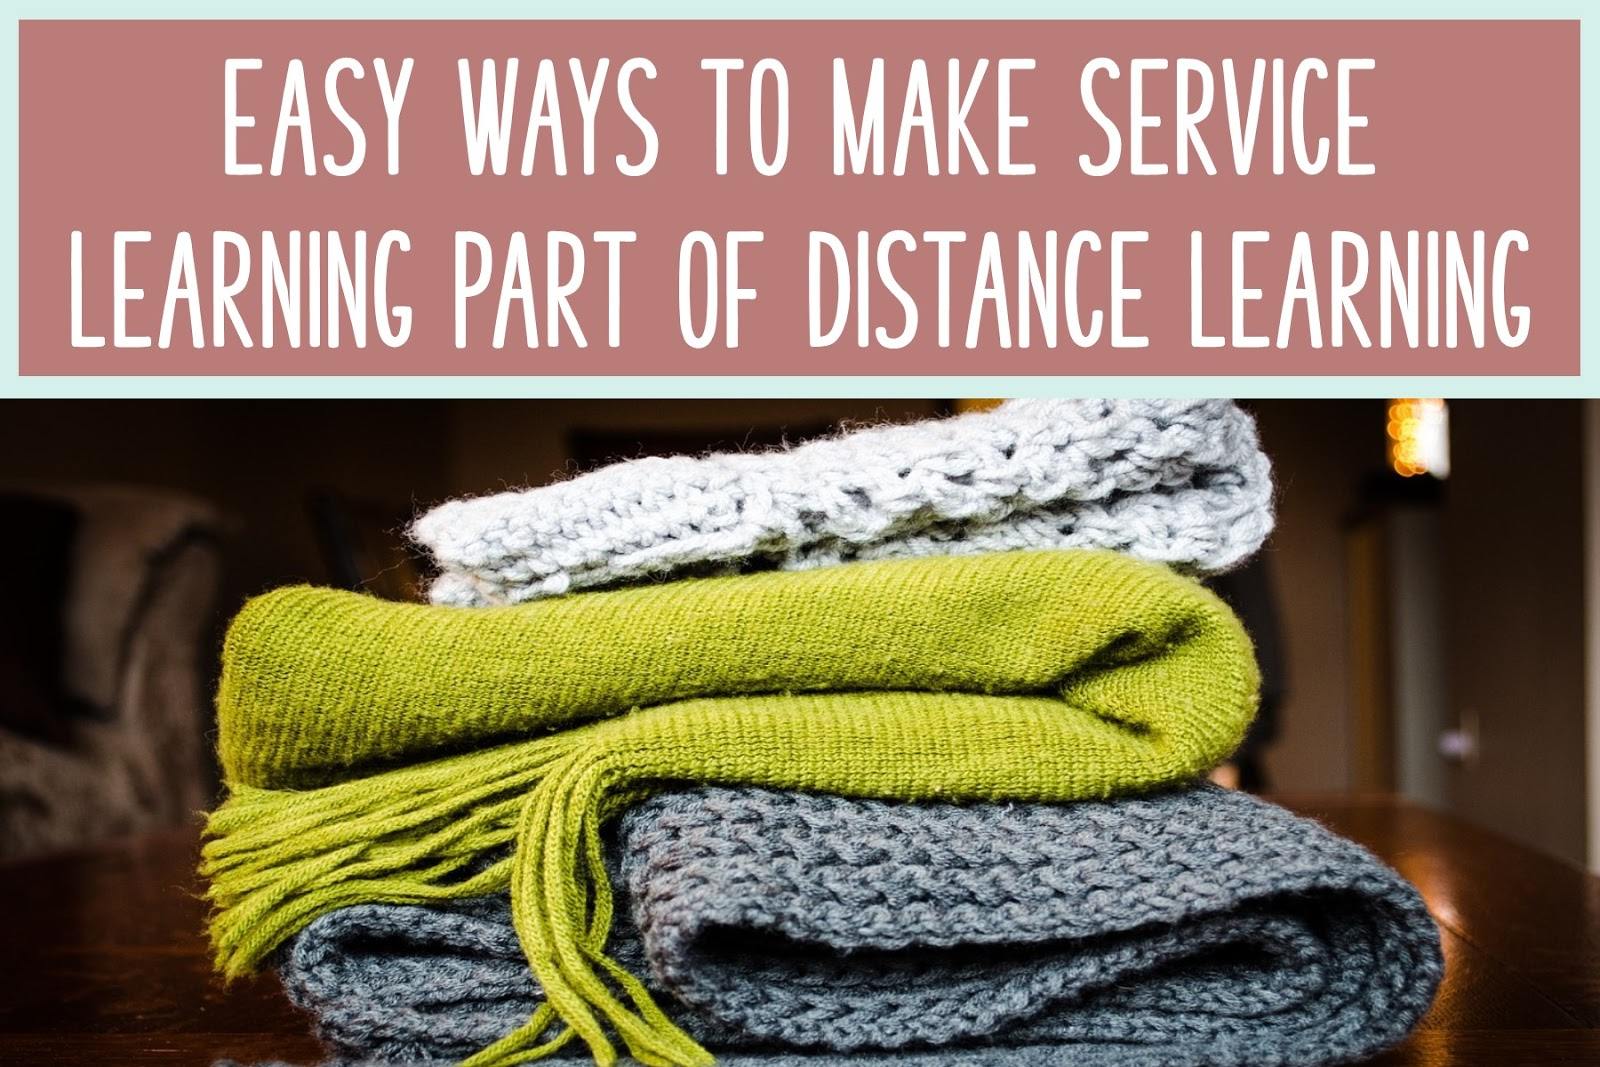 Easy Ways to Make Service Learning Part of Your Distance Learning Routine Cover Picture